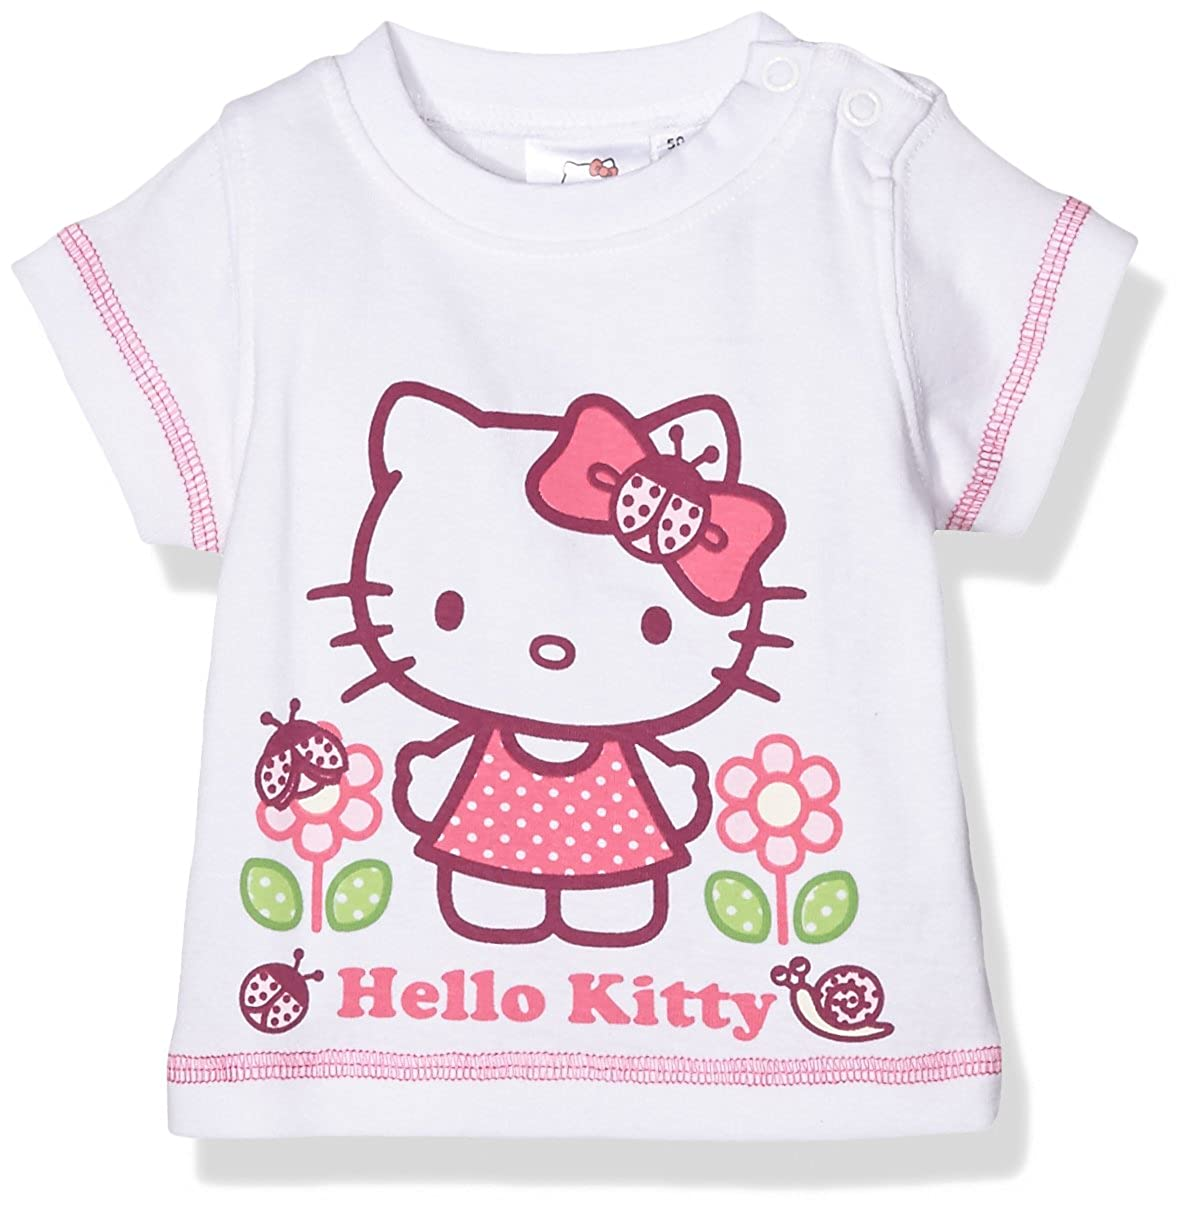 Twins - Hello Kitty 1 127 48, T-Shirt Unisex - Bimbi 0-24 Julius Hüpeden GmbH